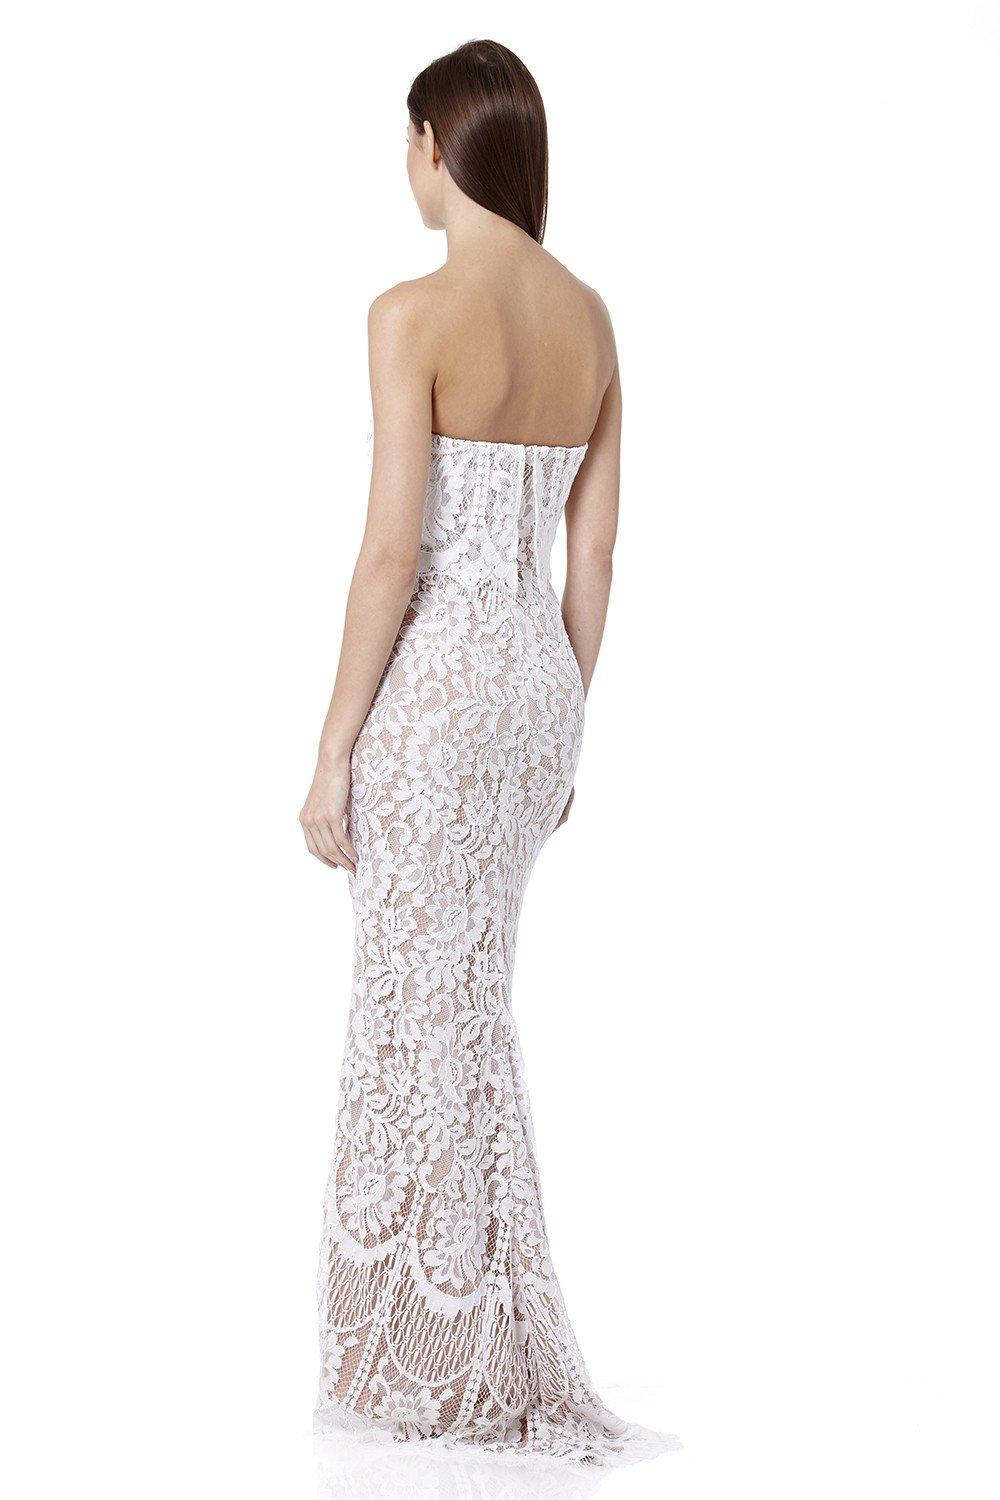 87ae323c0a4a Jarlo - White Adeline All Over Lace Bandeau Maxi Dress - Lyst. View  fullscreen